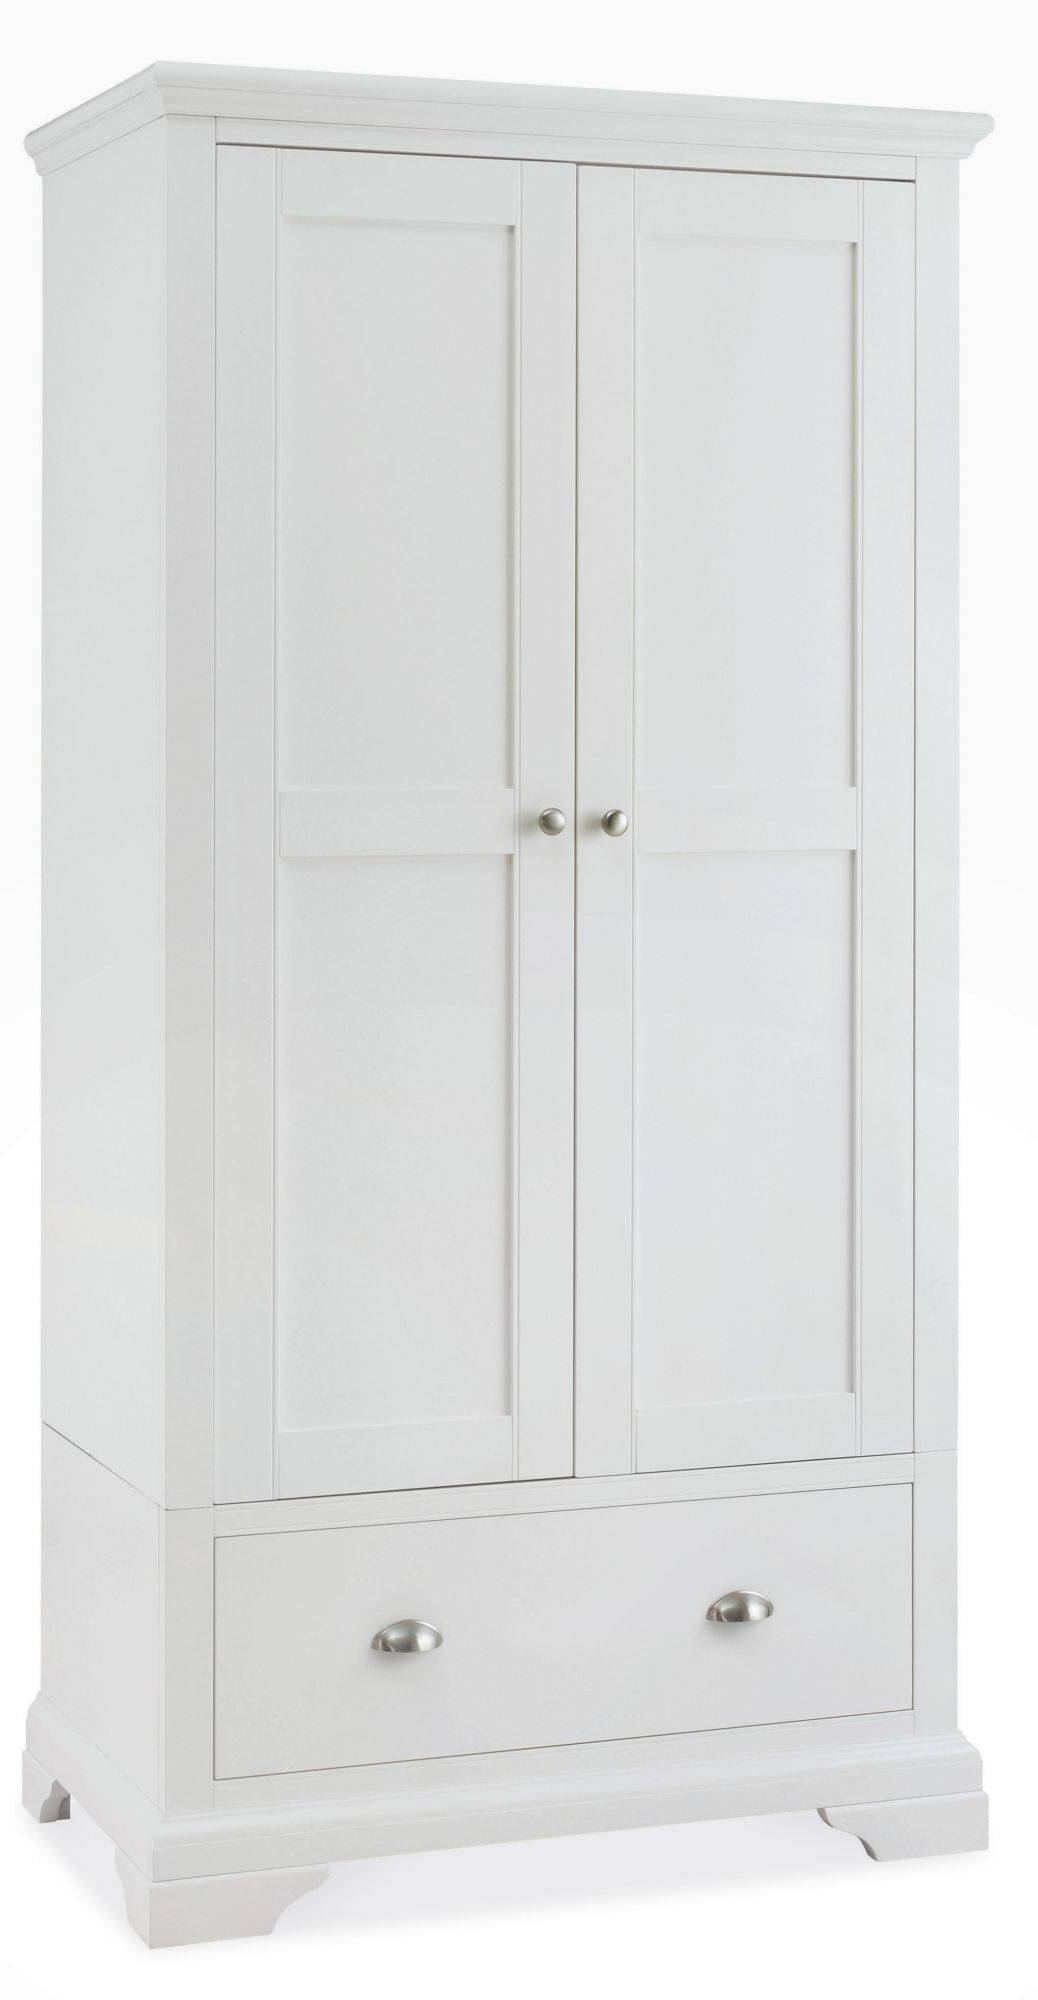 White Bedroom Wardrobes Fairford White Double Wardrobe Bedroom Furniture Hills